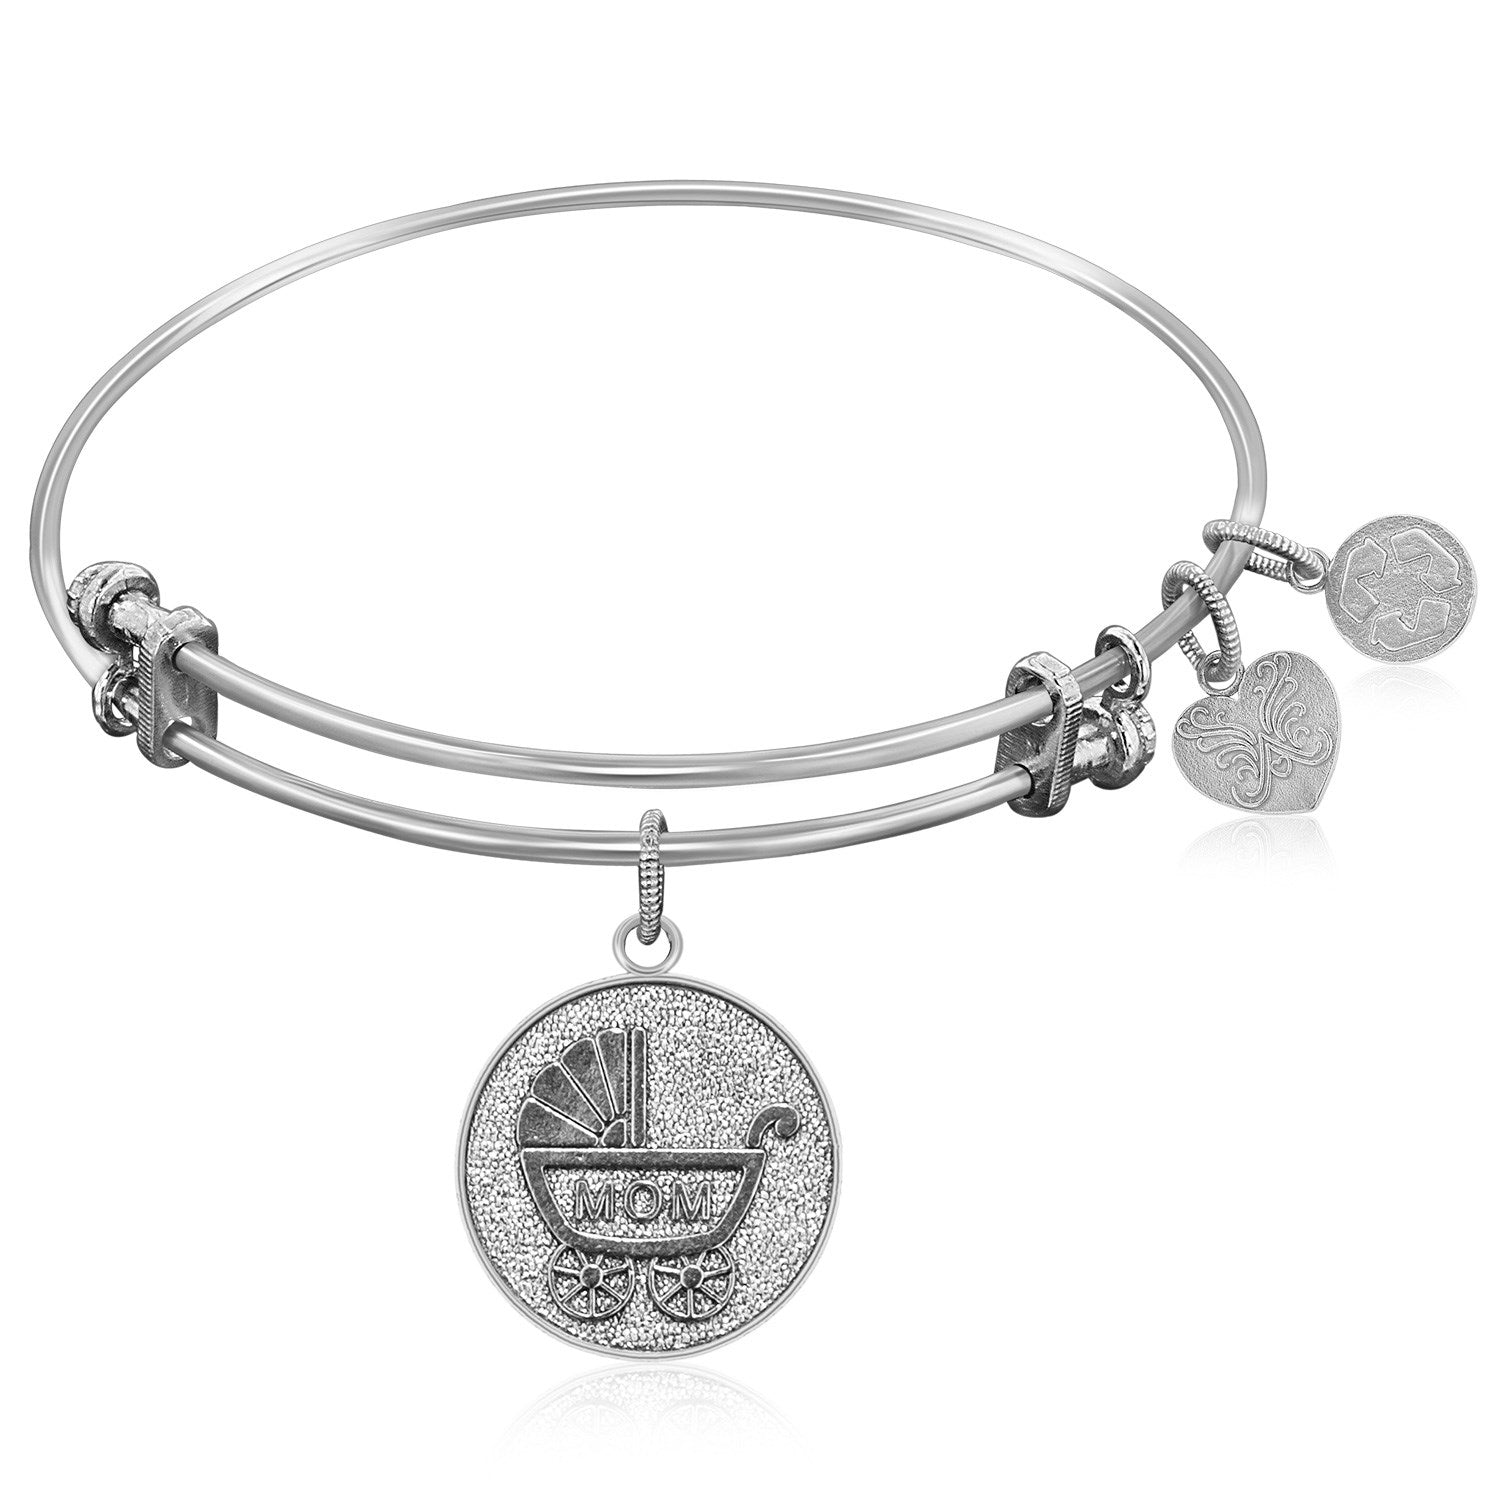 Expandable Bangle in White Tone Brass with New Mom Symbol